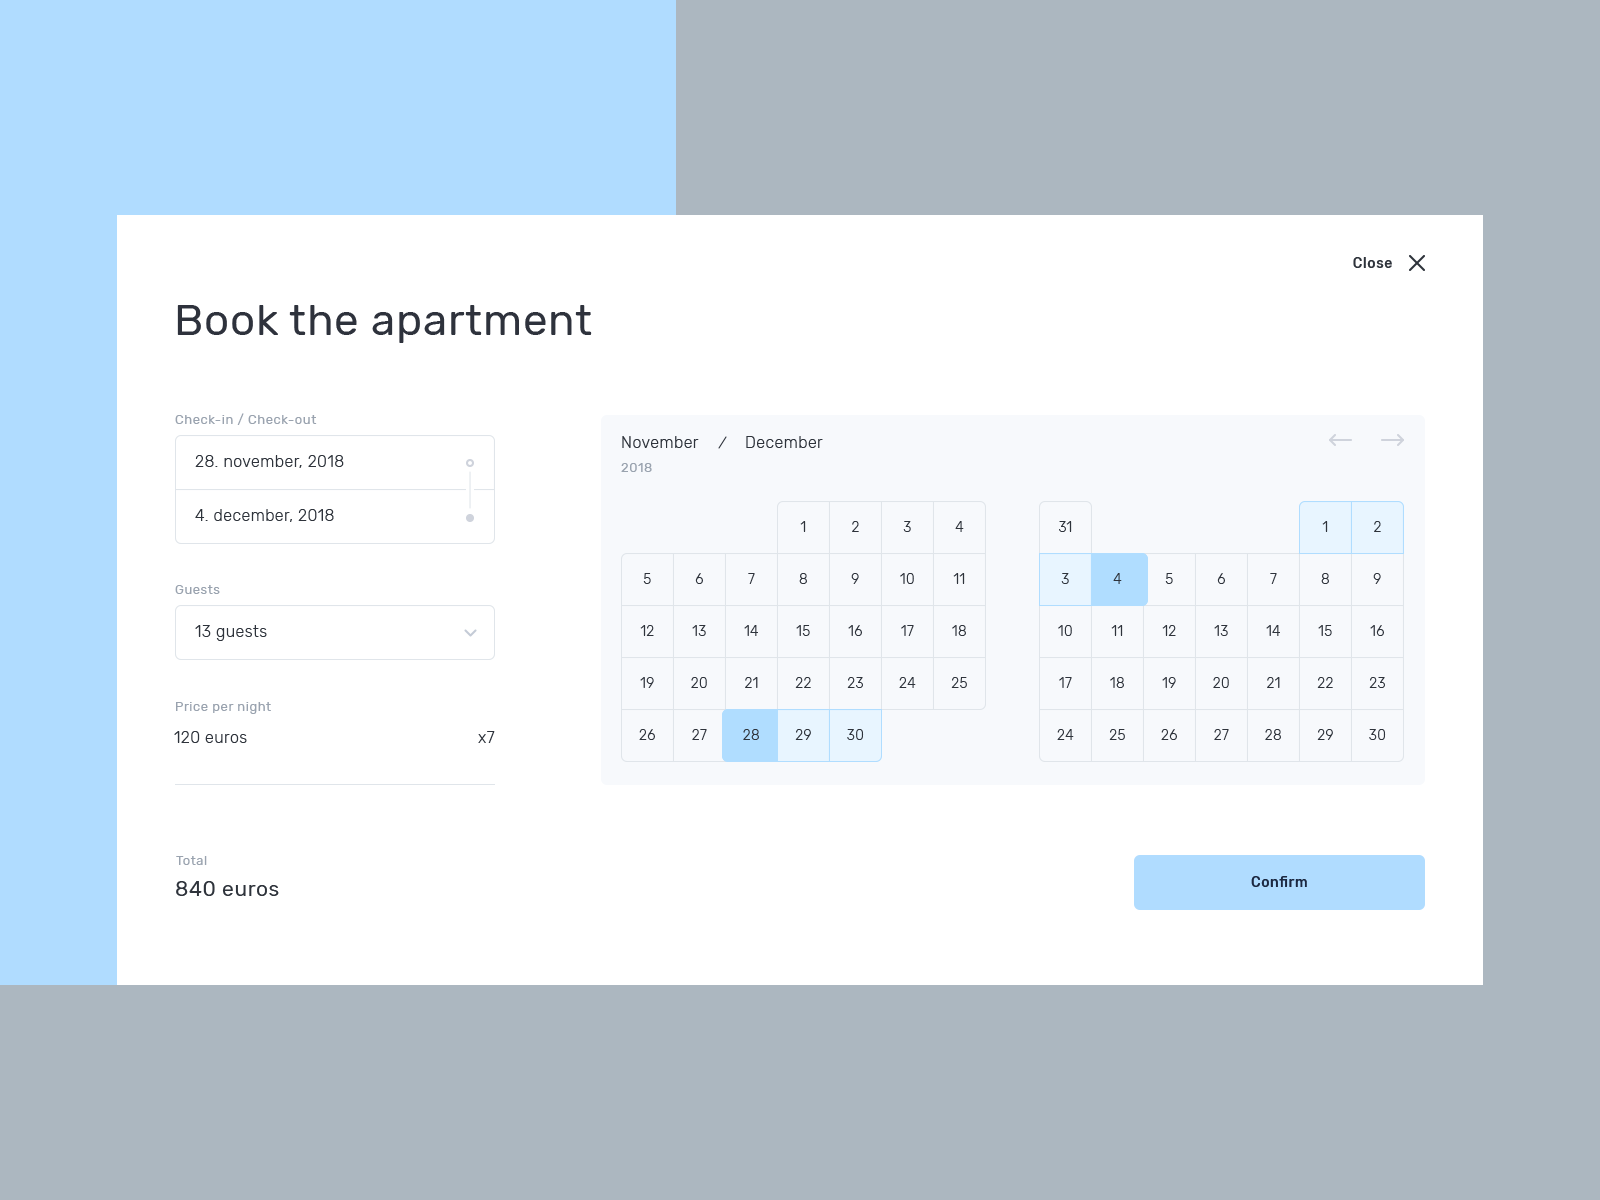 Hideout. Book house calendar tool page web page user date guests apartment book web experience ui ux interface design